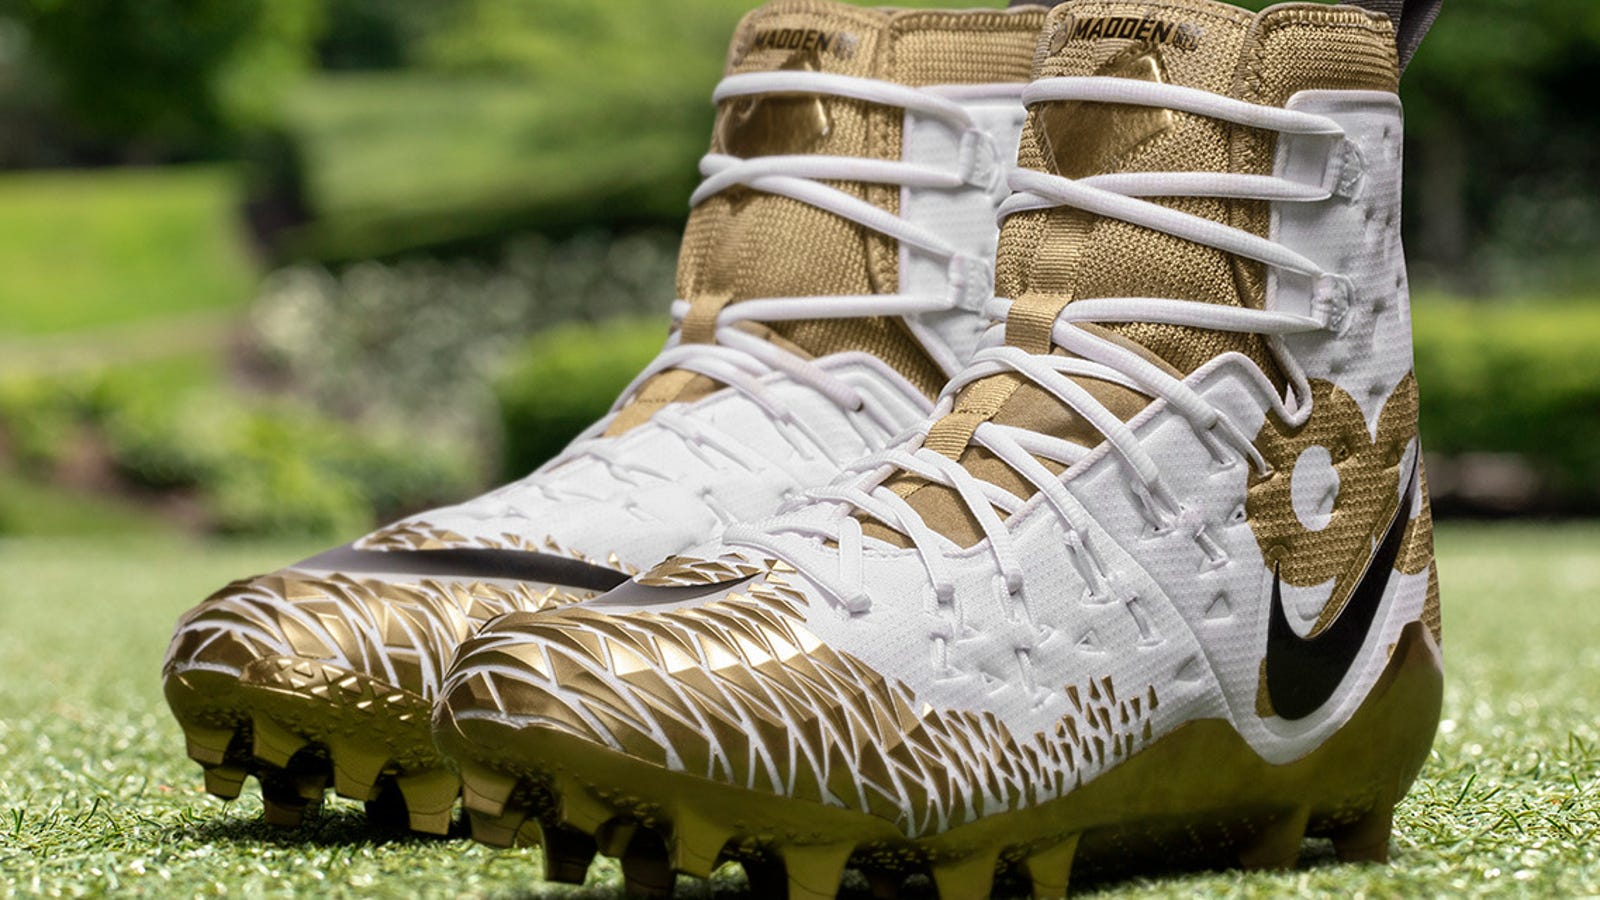 Madden's 99-Rated Players Got Some Sweet Cleats